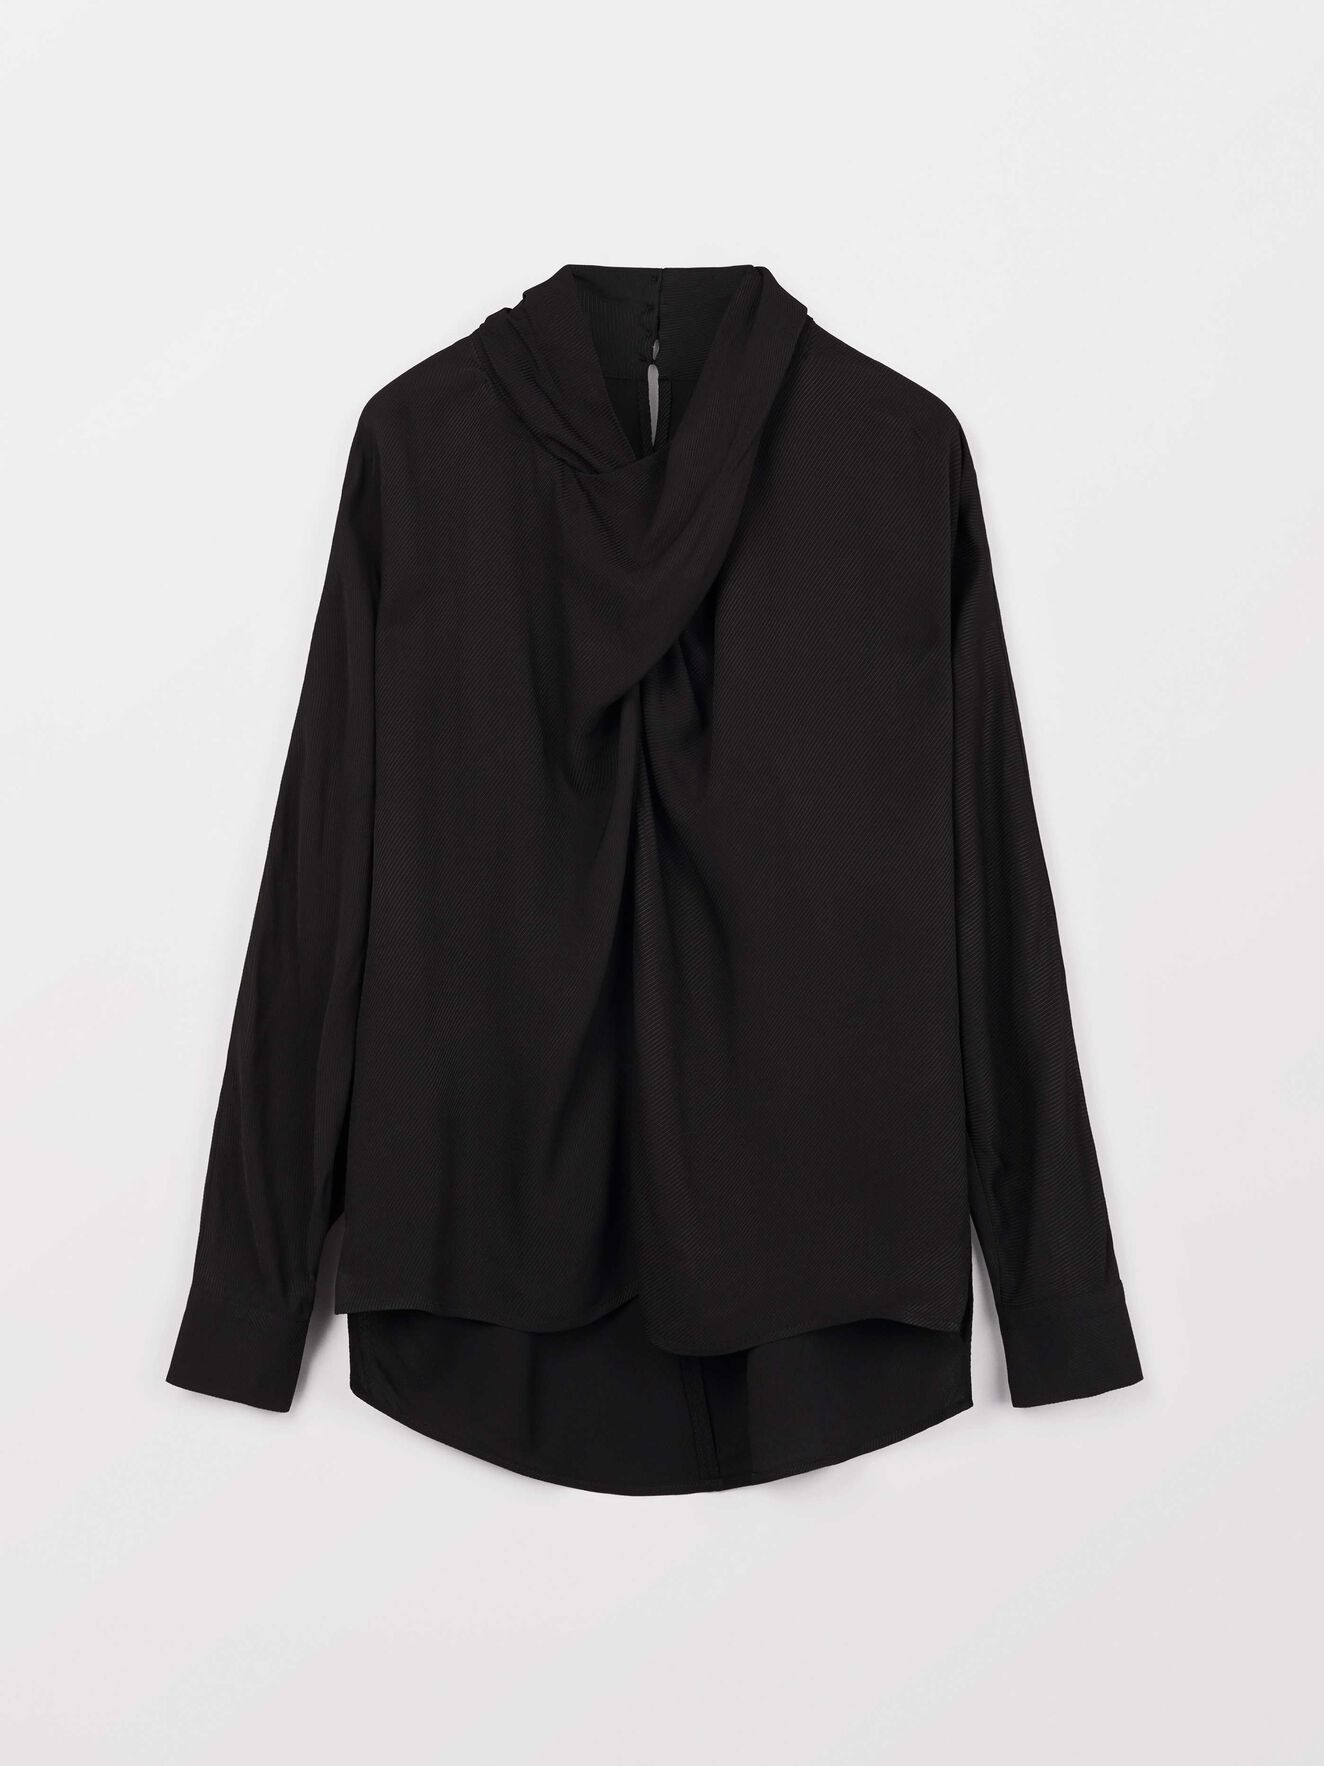 Pappus V Shirt in Midnight Black from Tiger of Sweden